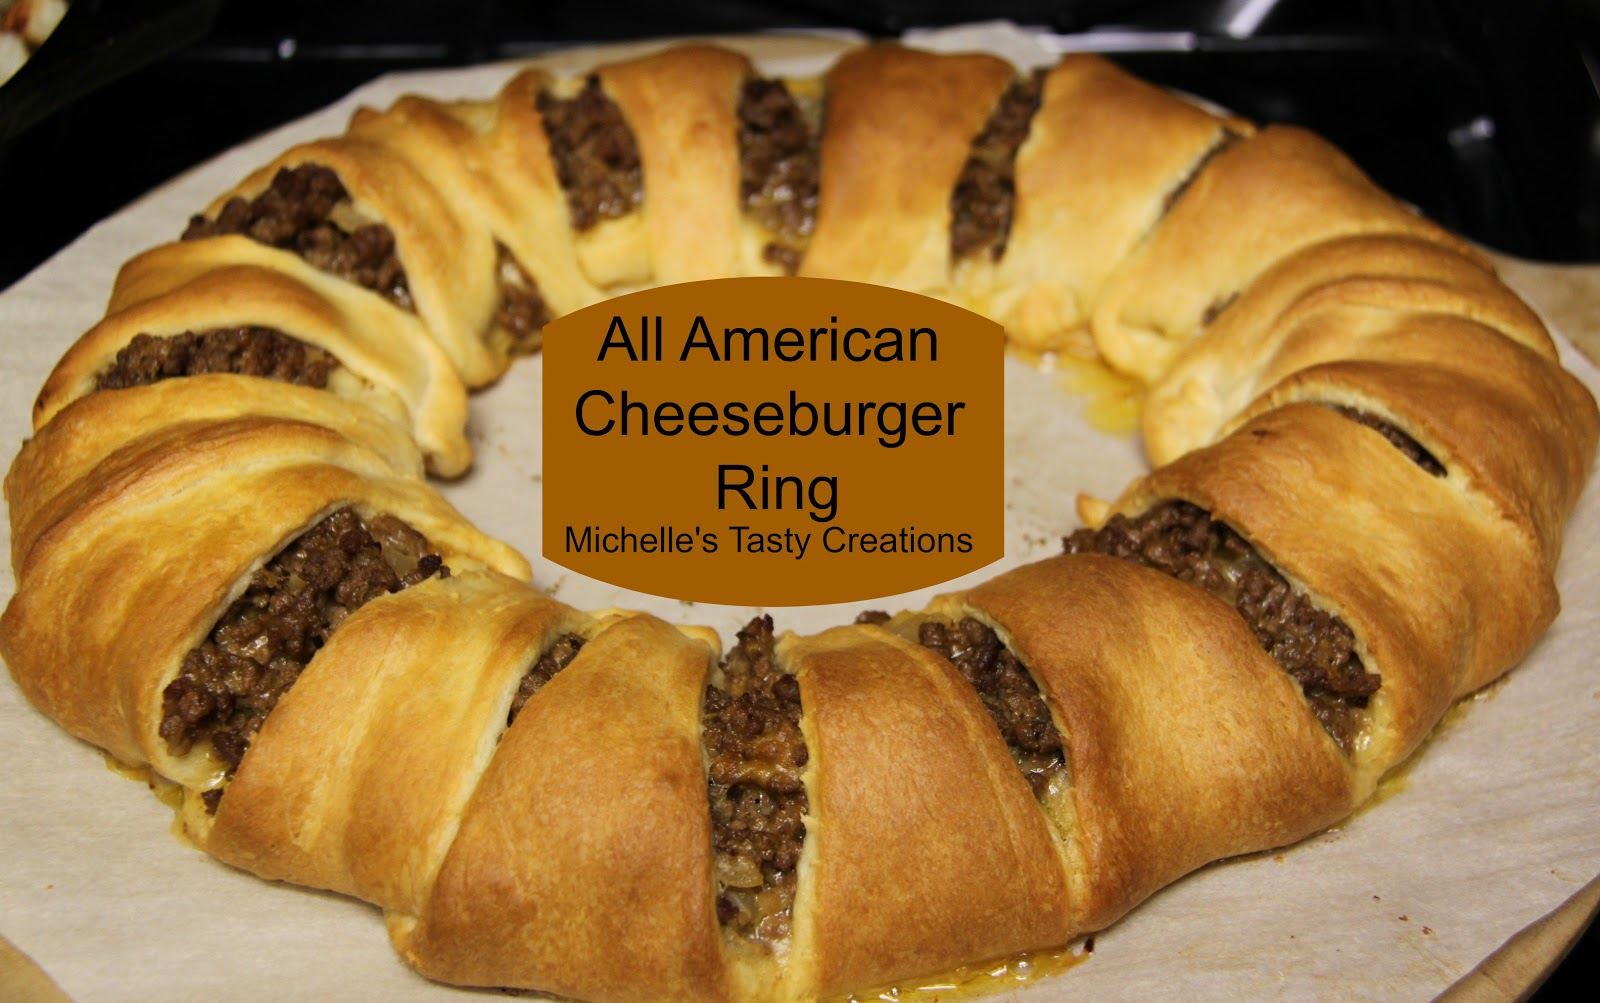 Michelle's Tasty Creations: All American Cheeseburger Ring